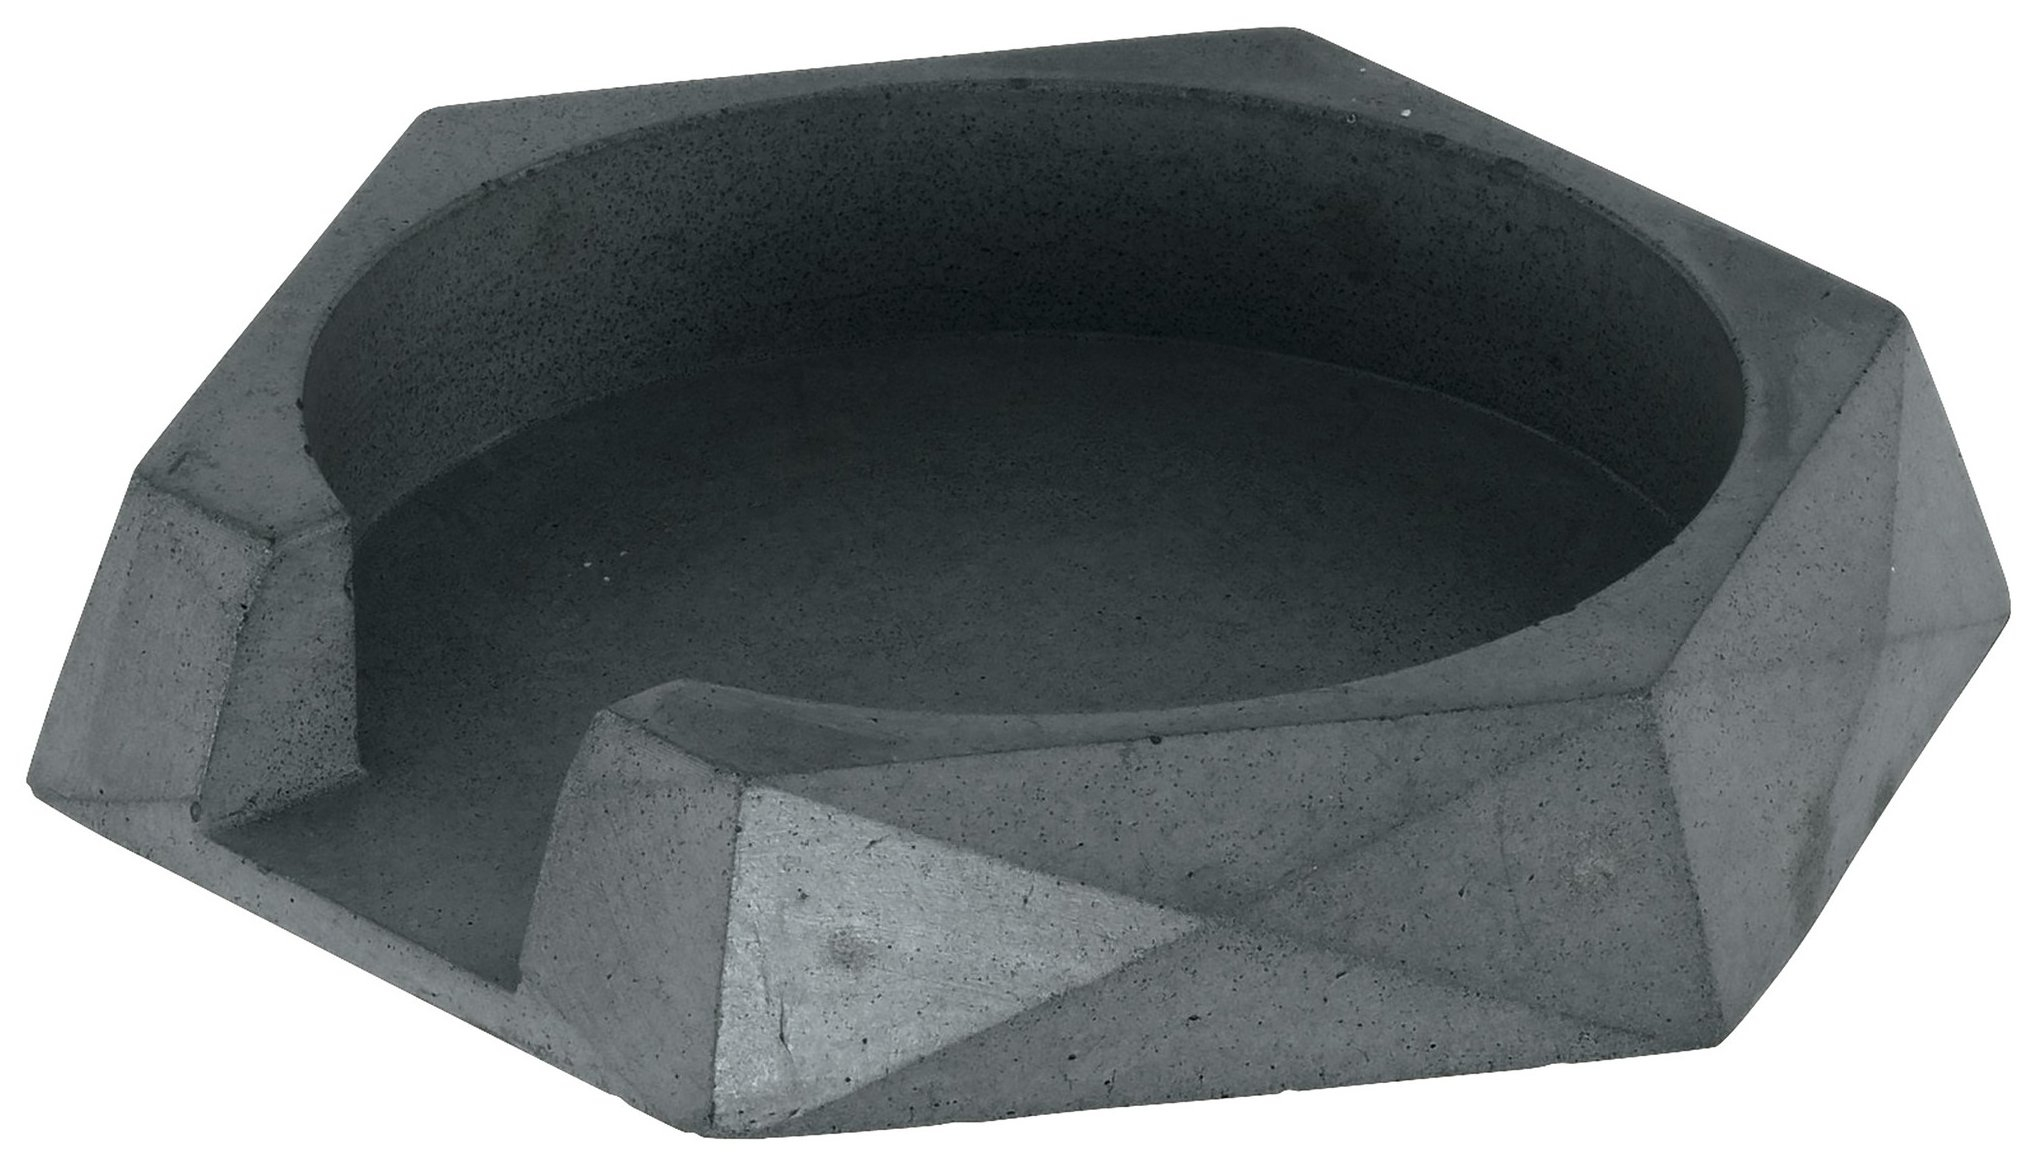 Kuhn Rikon 35023 Monument Cement Spoon Rest, 5.7'', Anthracite by Kuhn Rikon